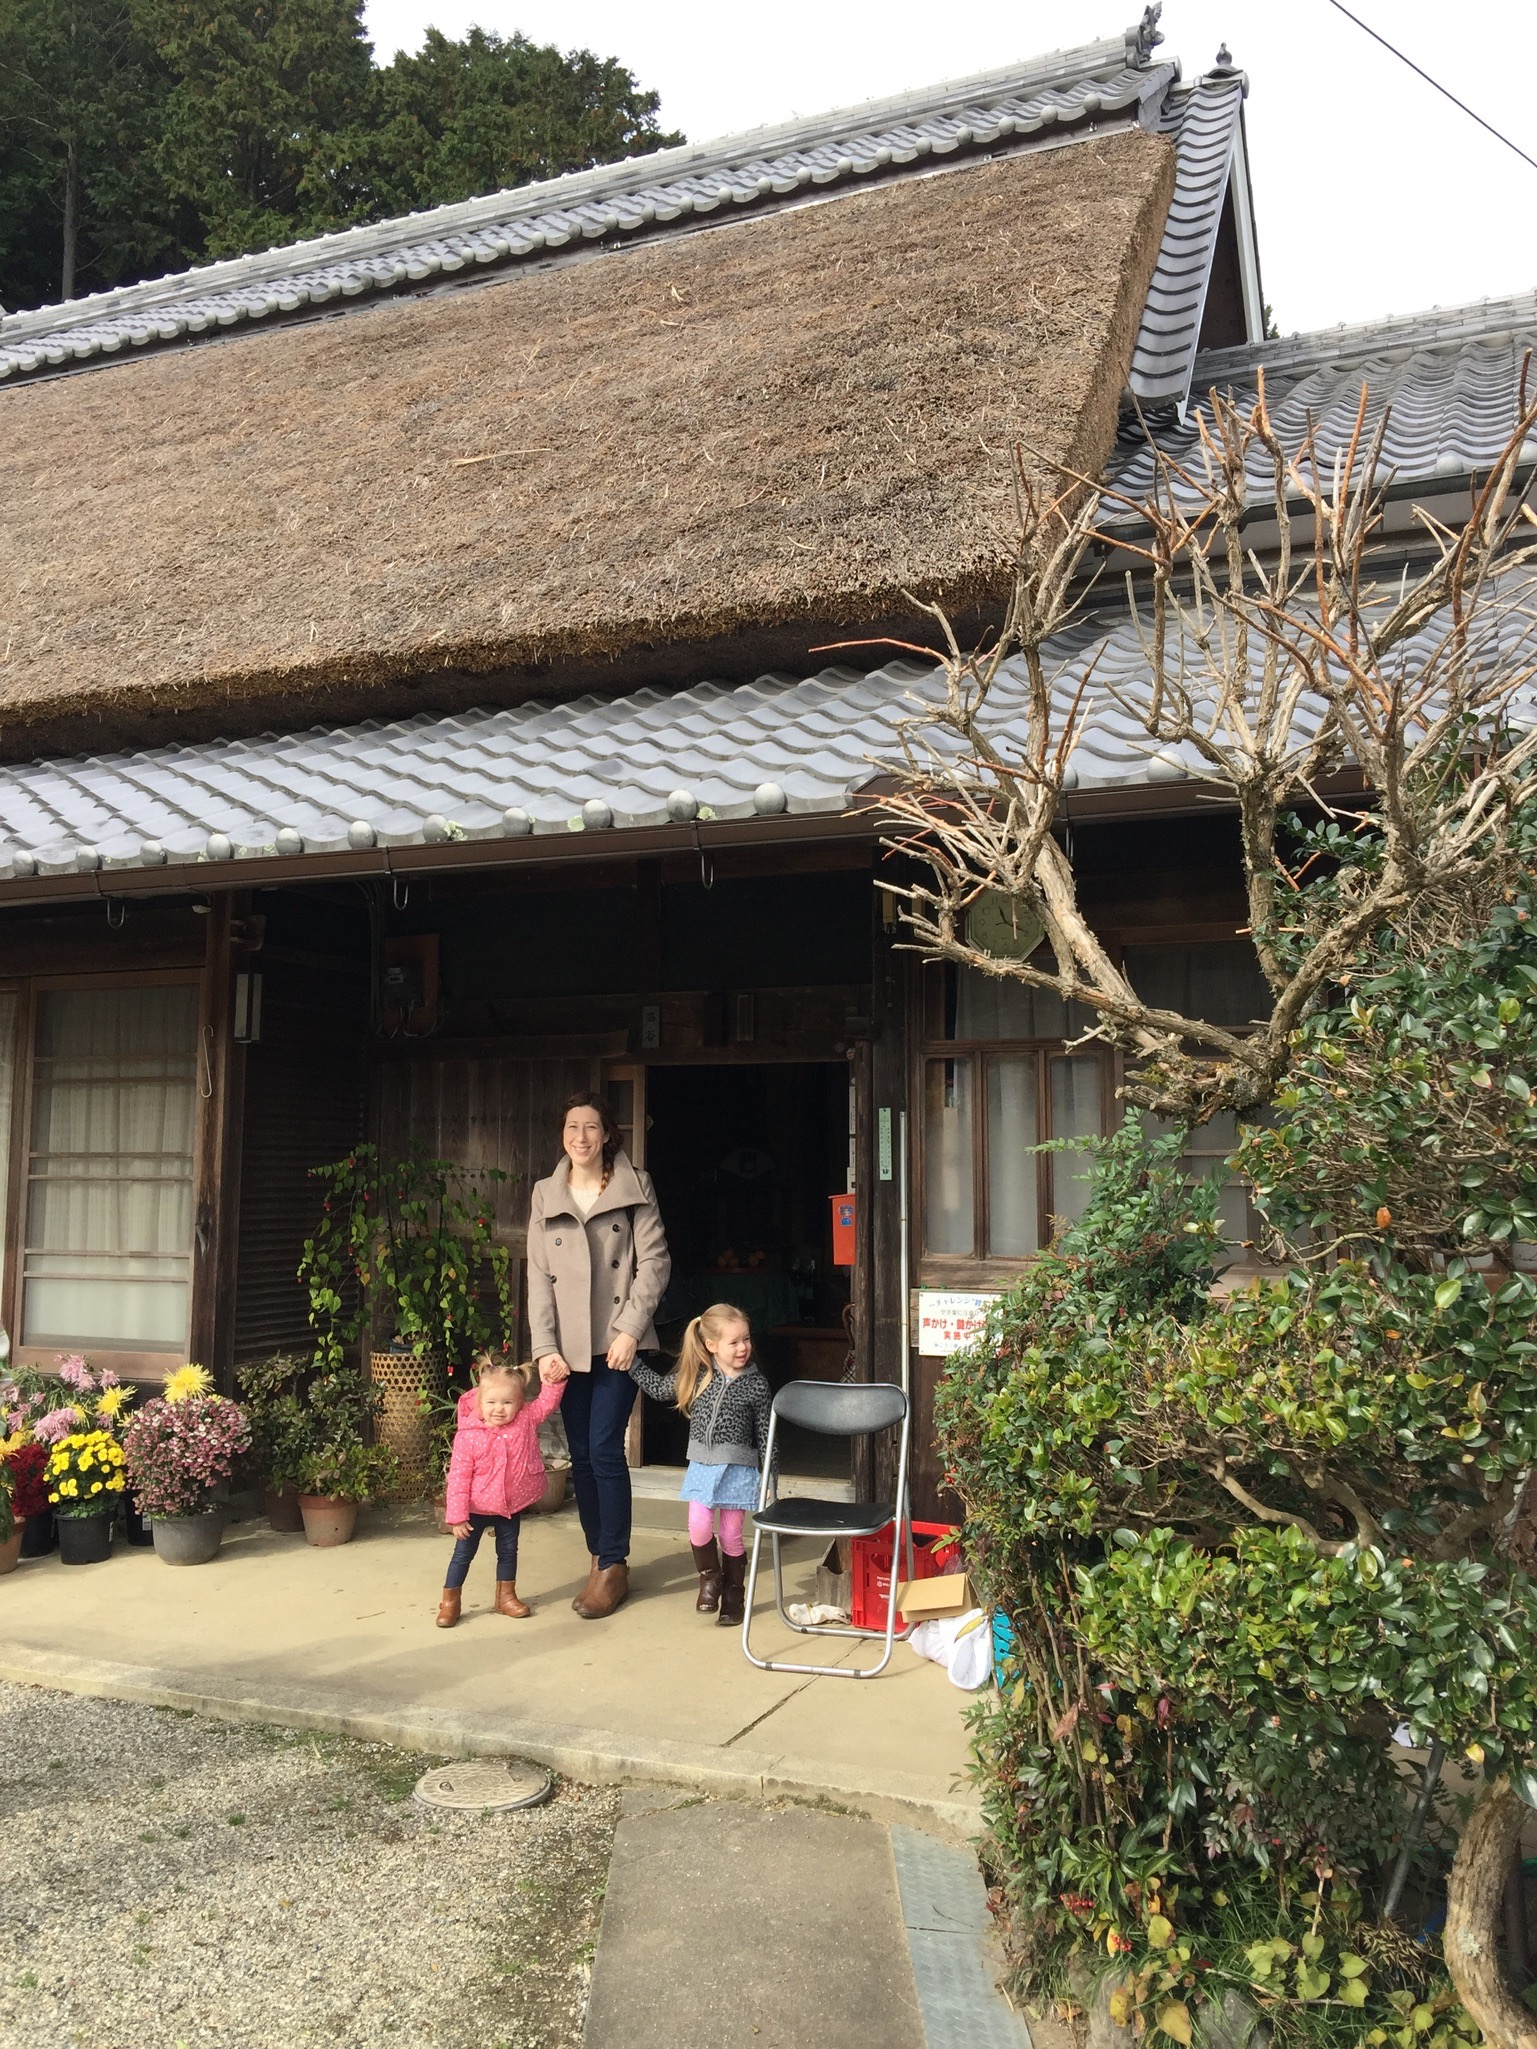 A traditional Japanese home that has been in the same family for 250 years!We were able to have tea here with the family. It has huge wood columns that seemed to have worked out pretty well.